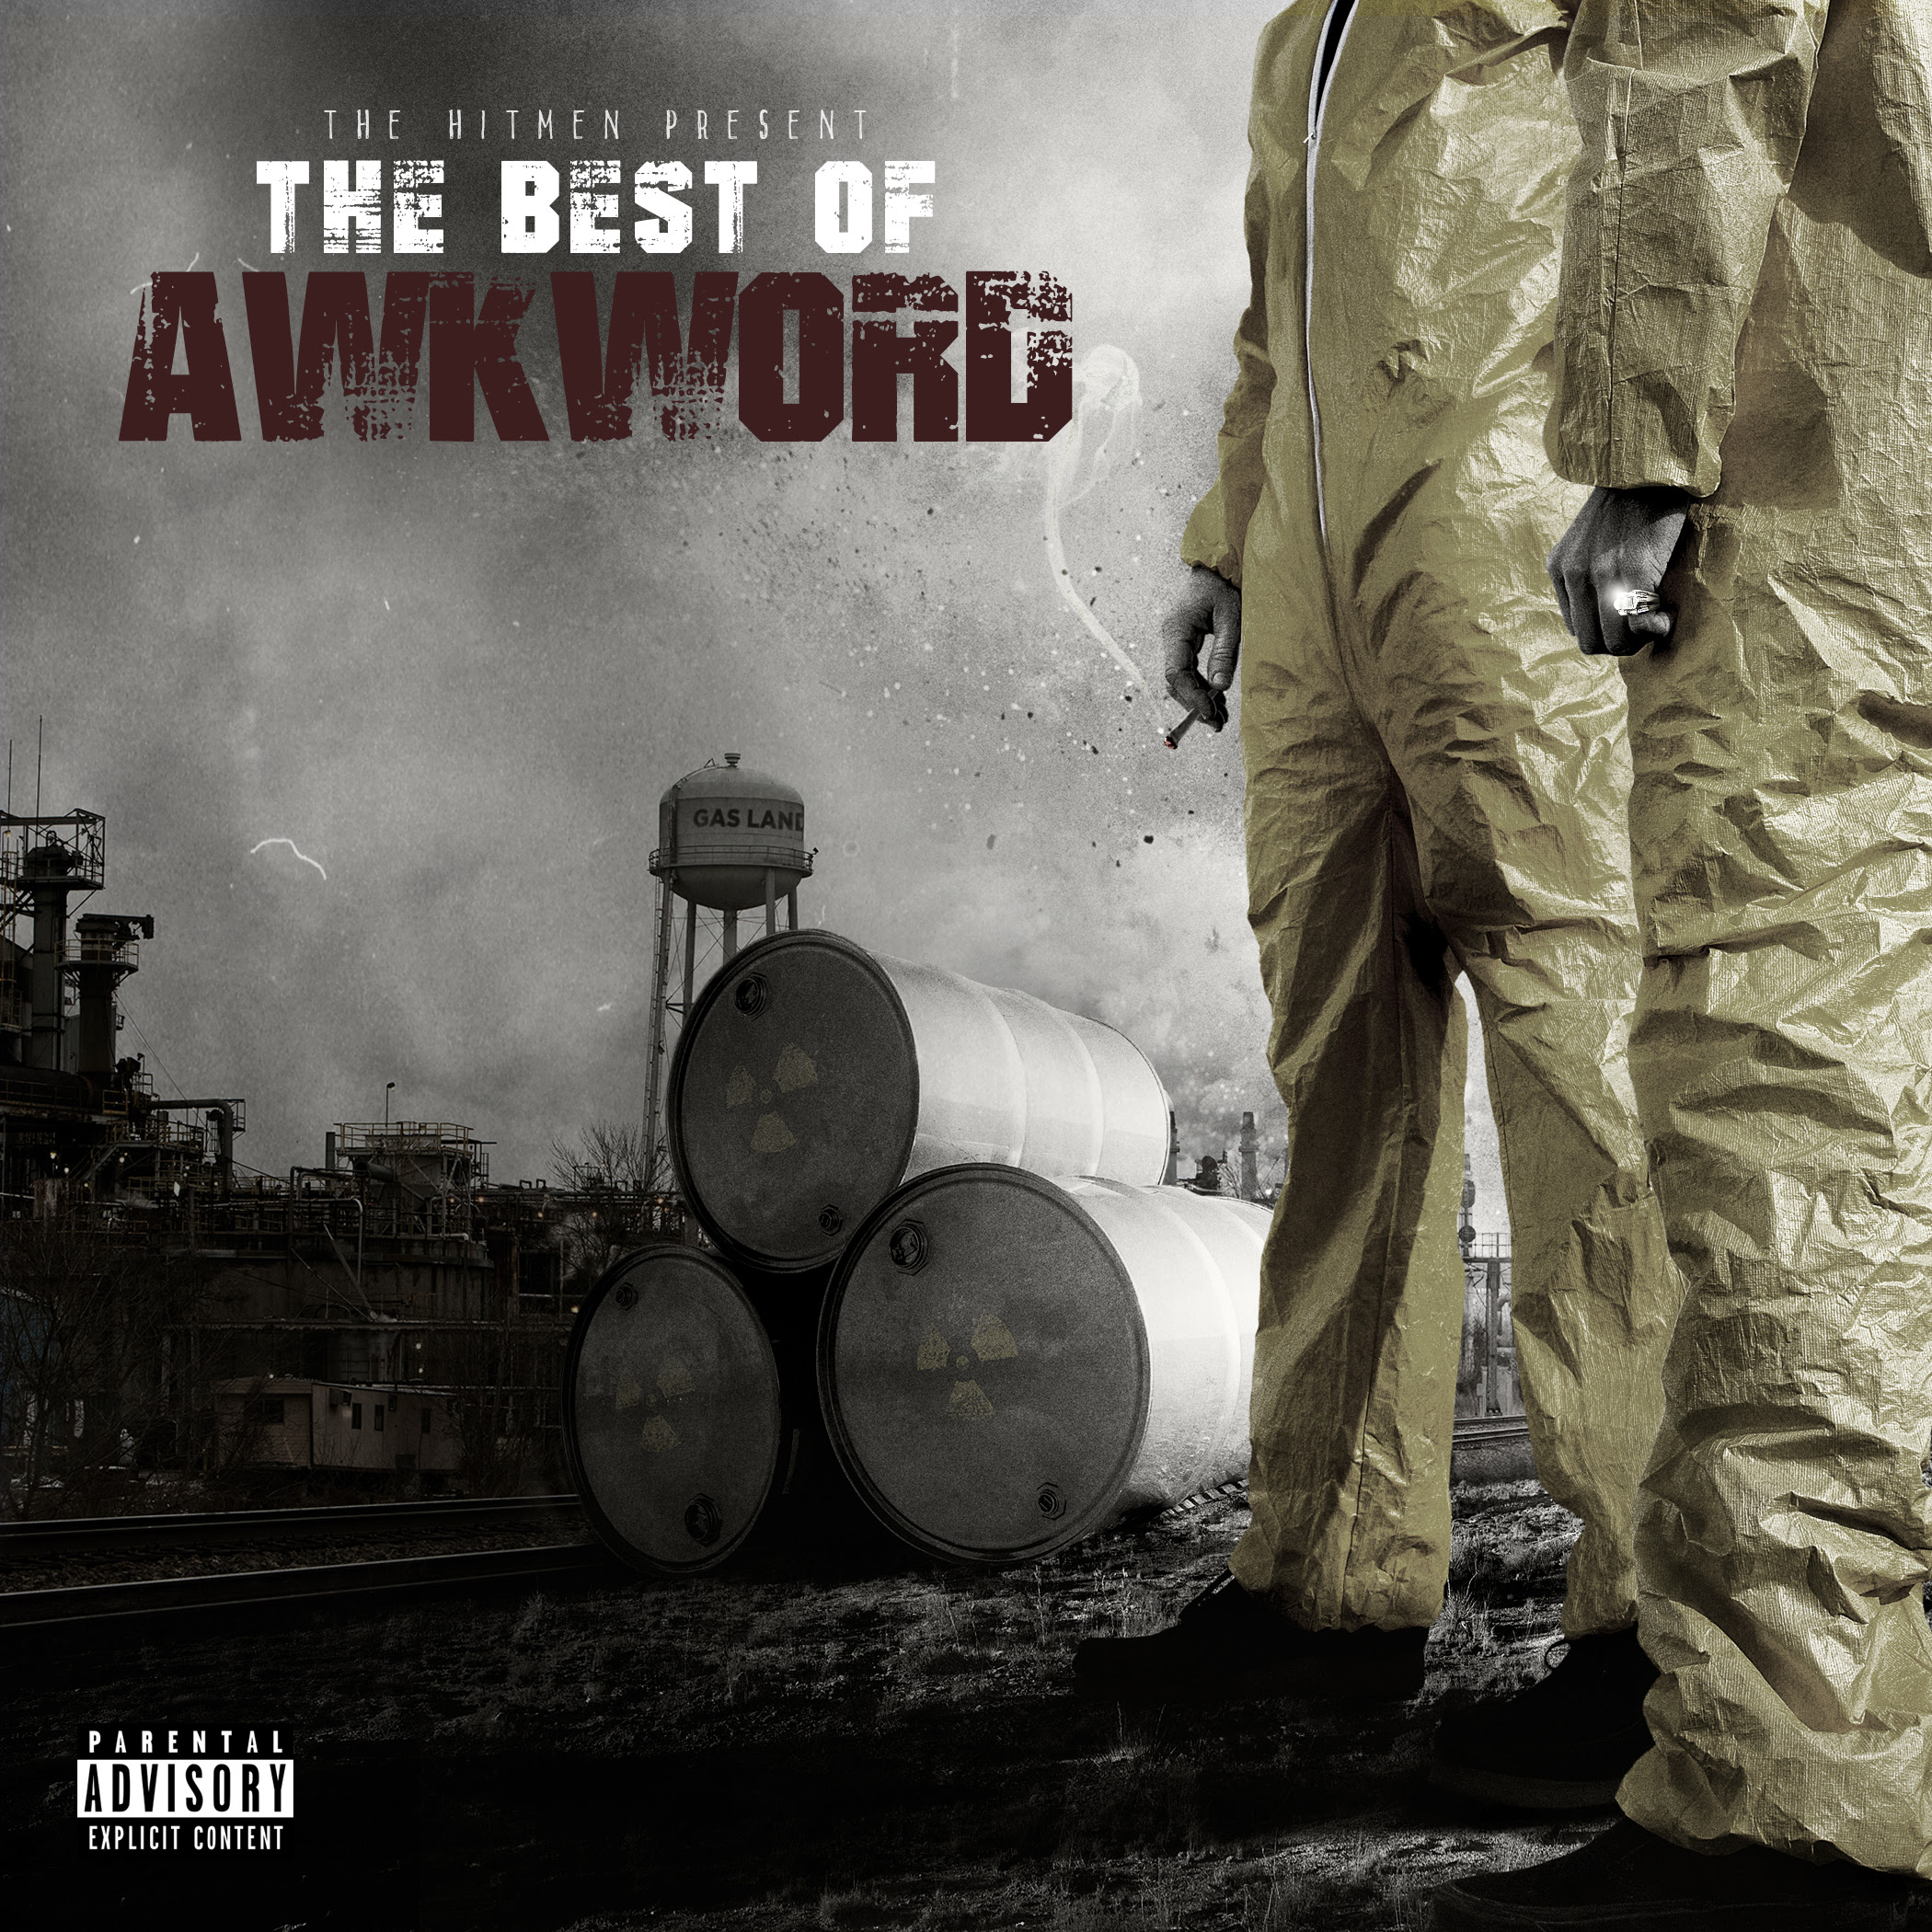 The Hitmen x ItsBizkit.com present The Best of AWKWORD